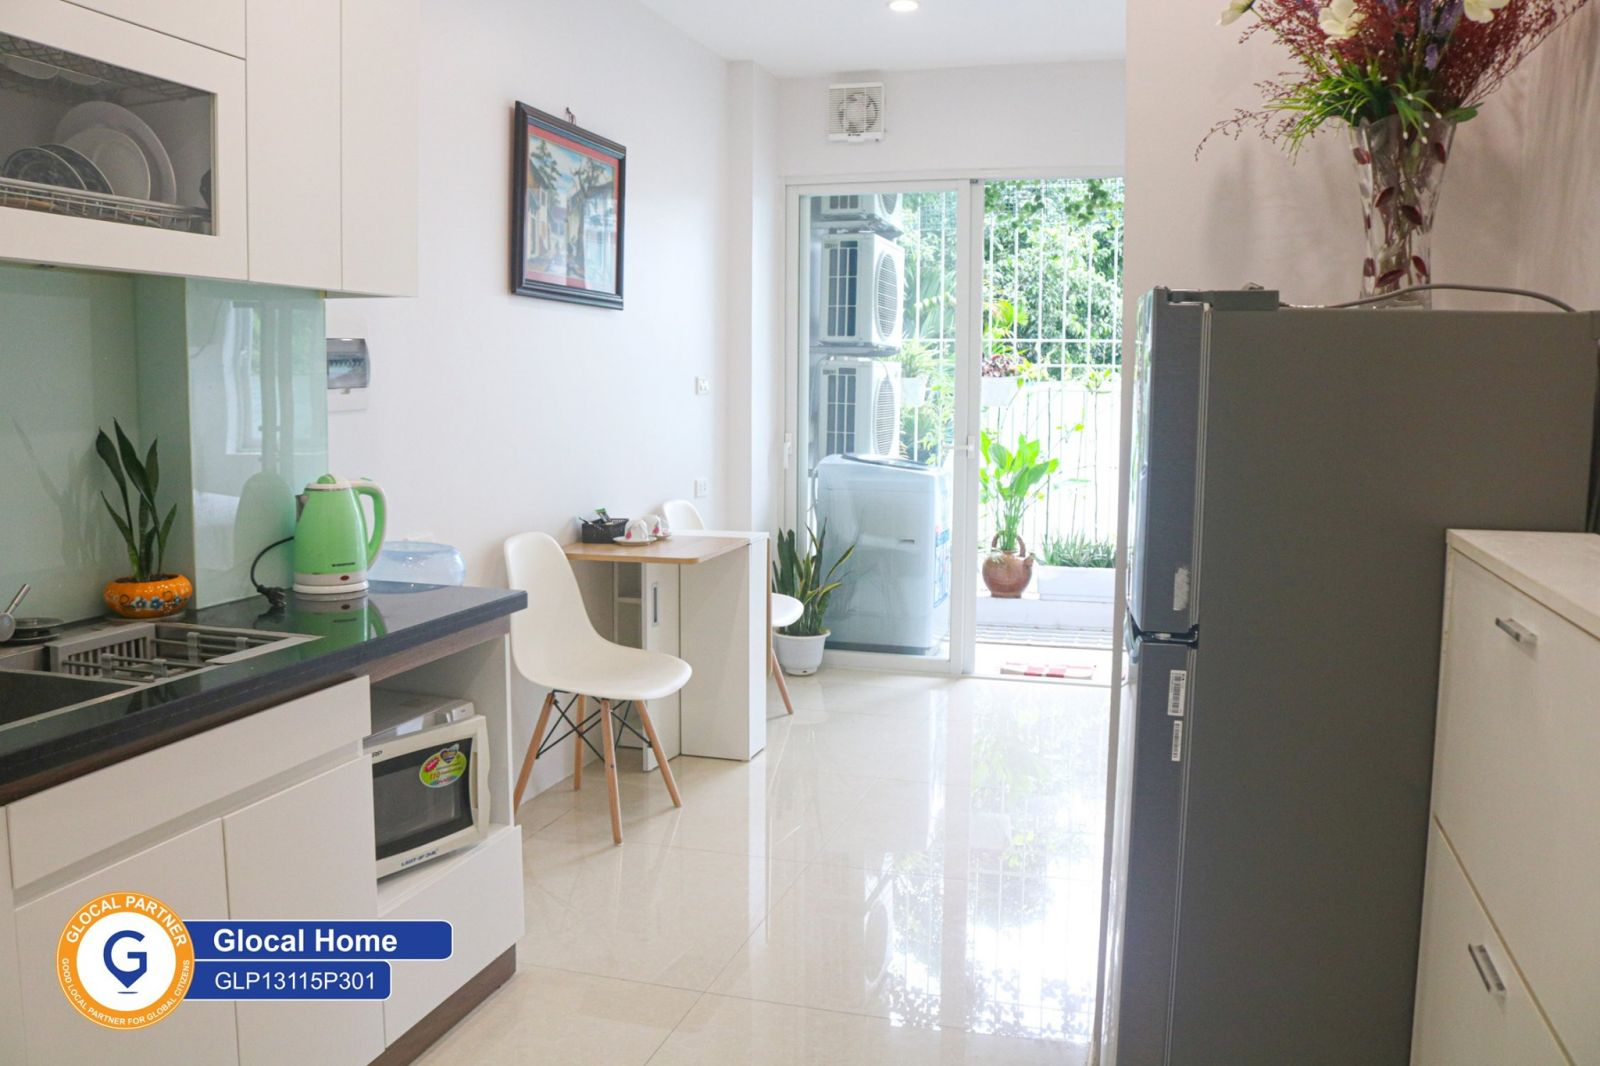 One bedroom apartment with fully furnished and lots of natural light in Dang Thai Mai